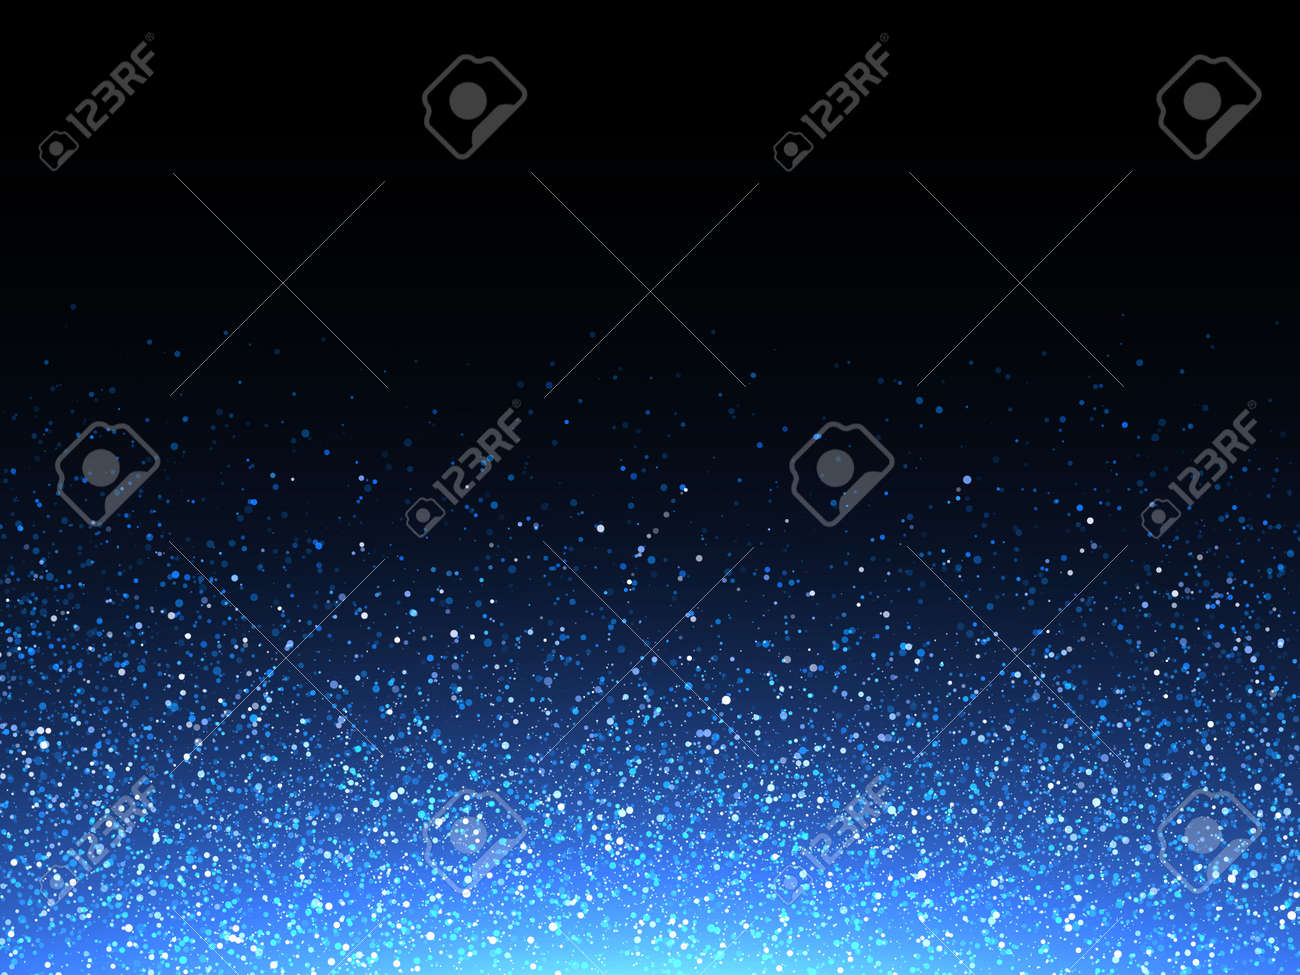 Blue glitter spray texture background. Vector glittering particles of crystal snowflakes on black. Cosmic light shine dispersion - 61153642